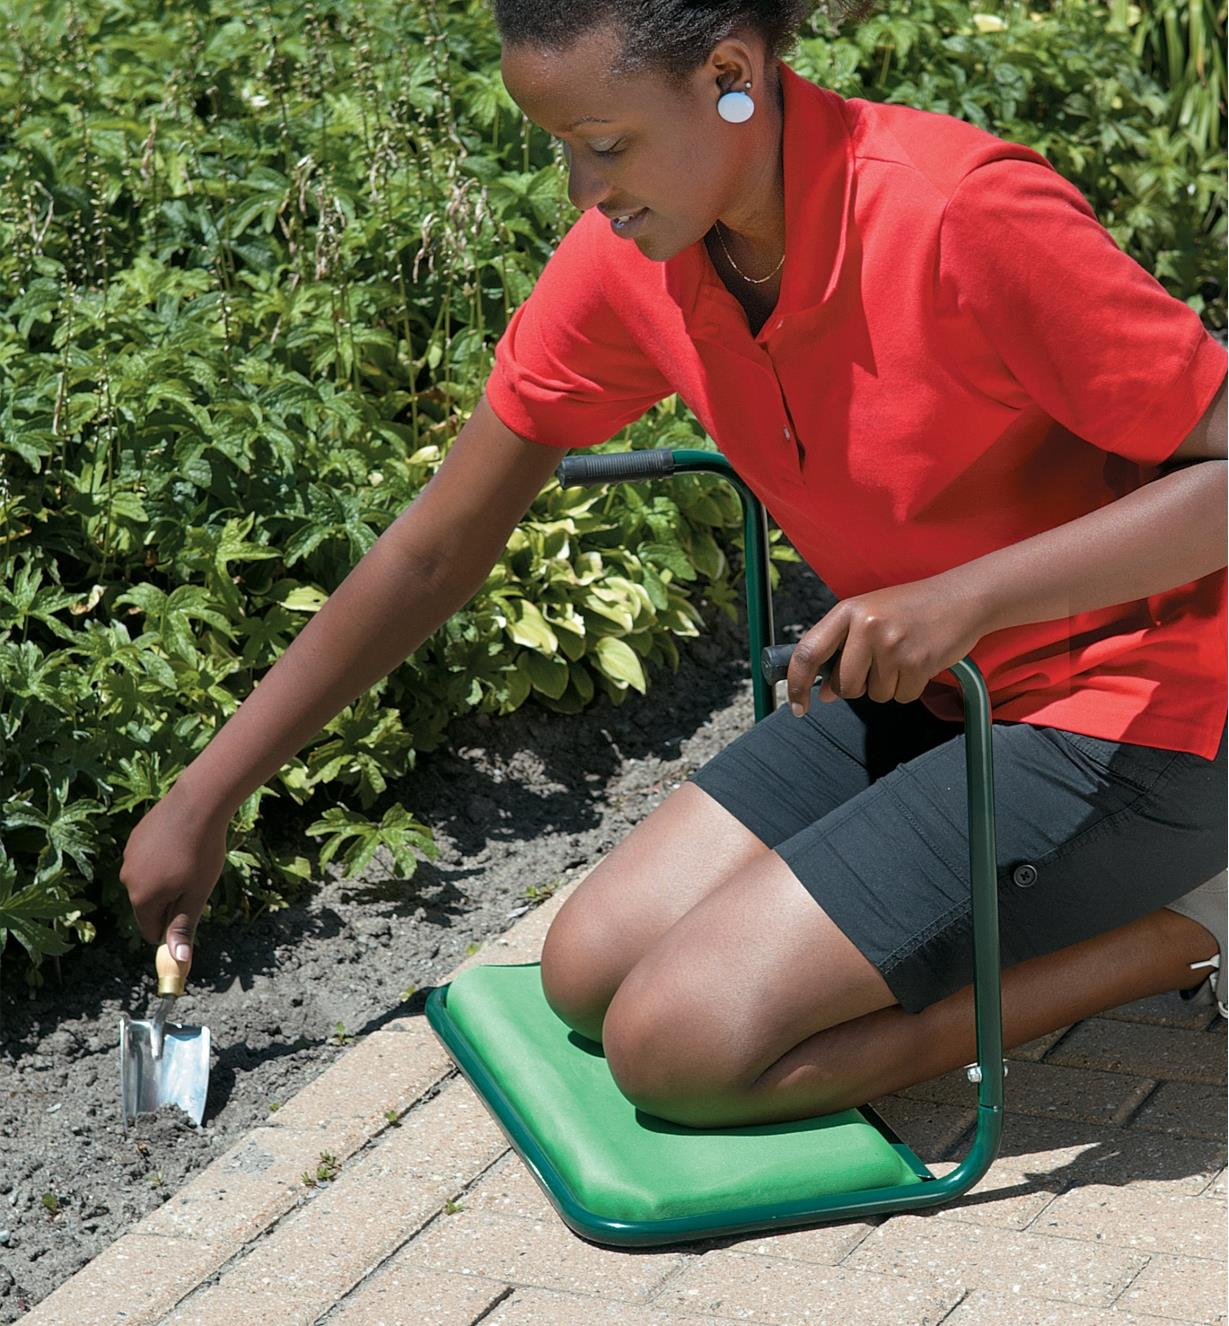 A woman kneels on the Garden Kneeler while gardening